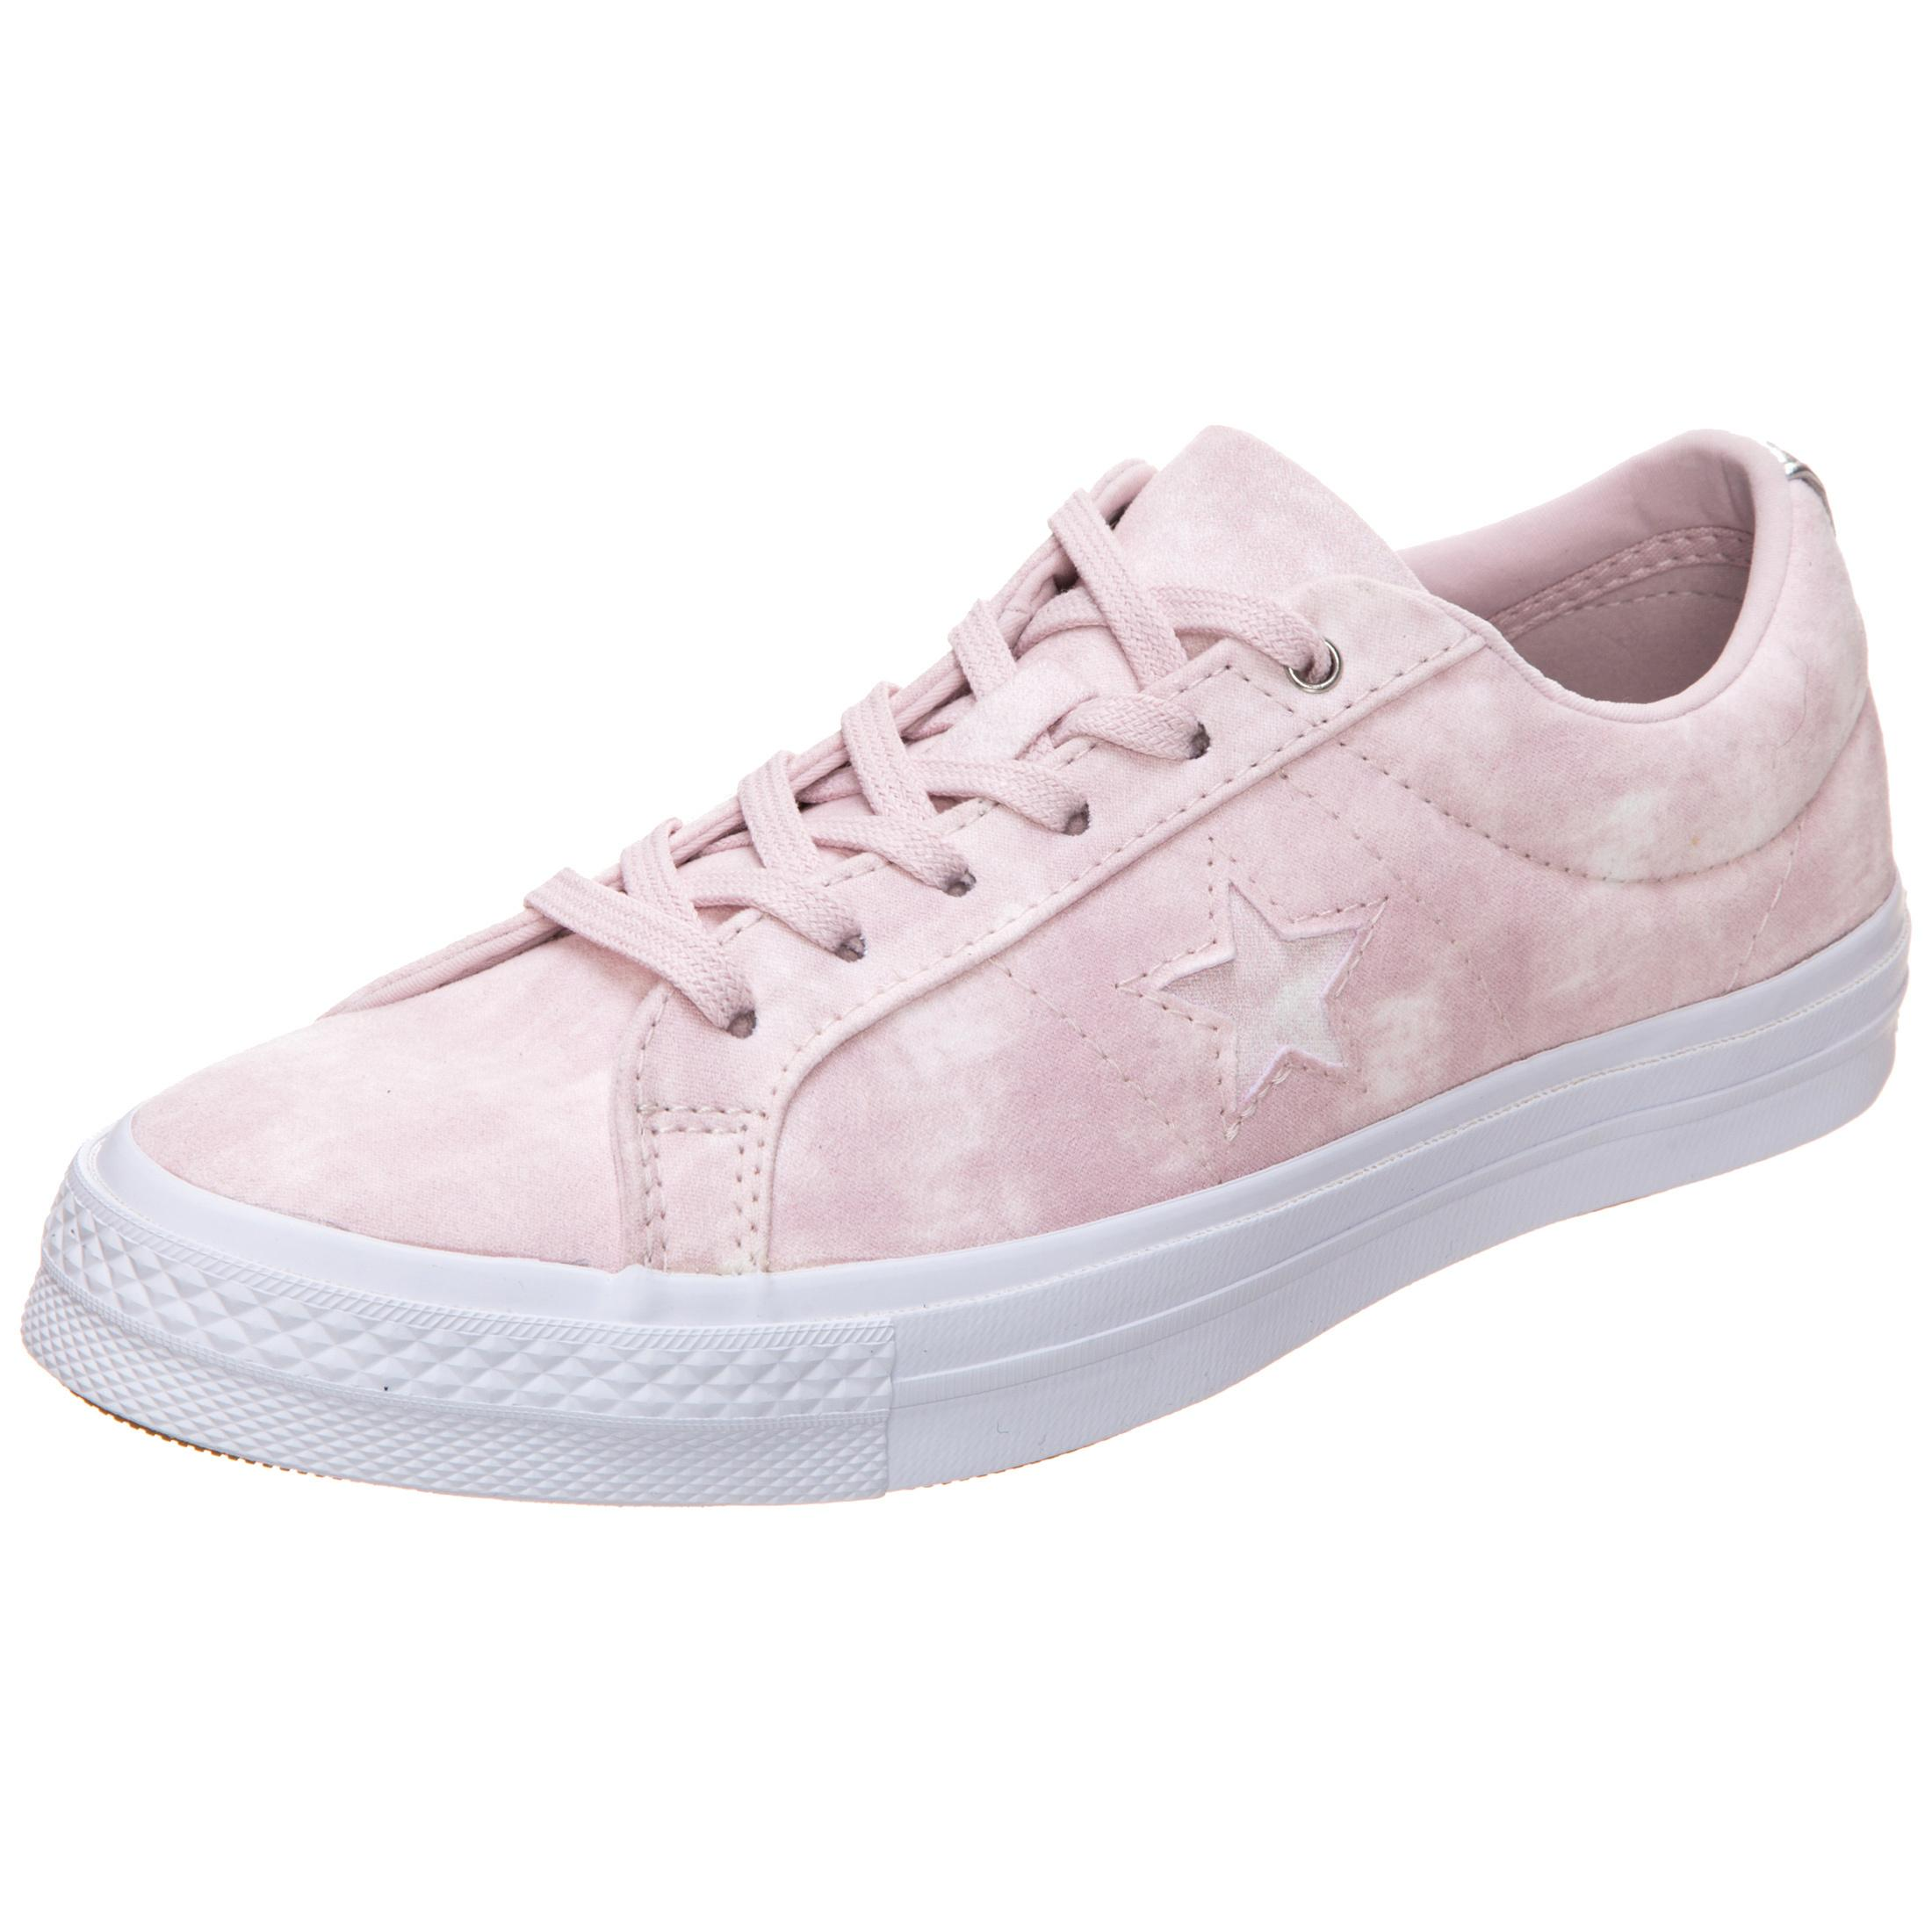 CONVERSE Cons One Star Peached Wash Turnschuhe Damen Rosa   silber im Online Shop von SportScheck kaufen Gute Qualität beliebte Schuhe